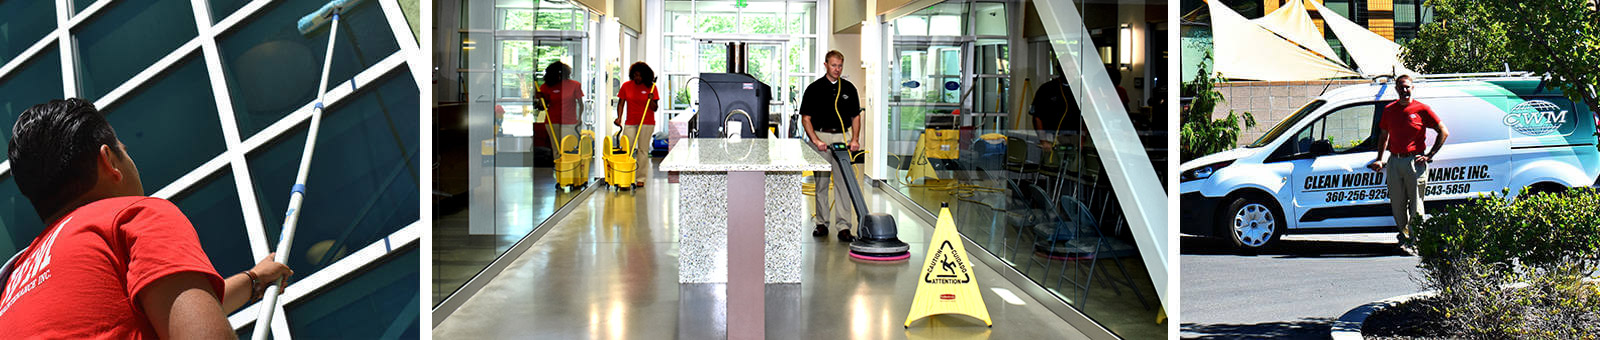 More variety in professional cleaning with Clean World Maintenance